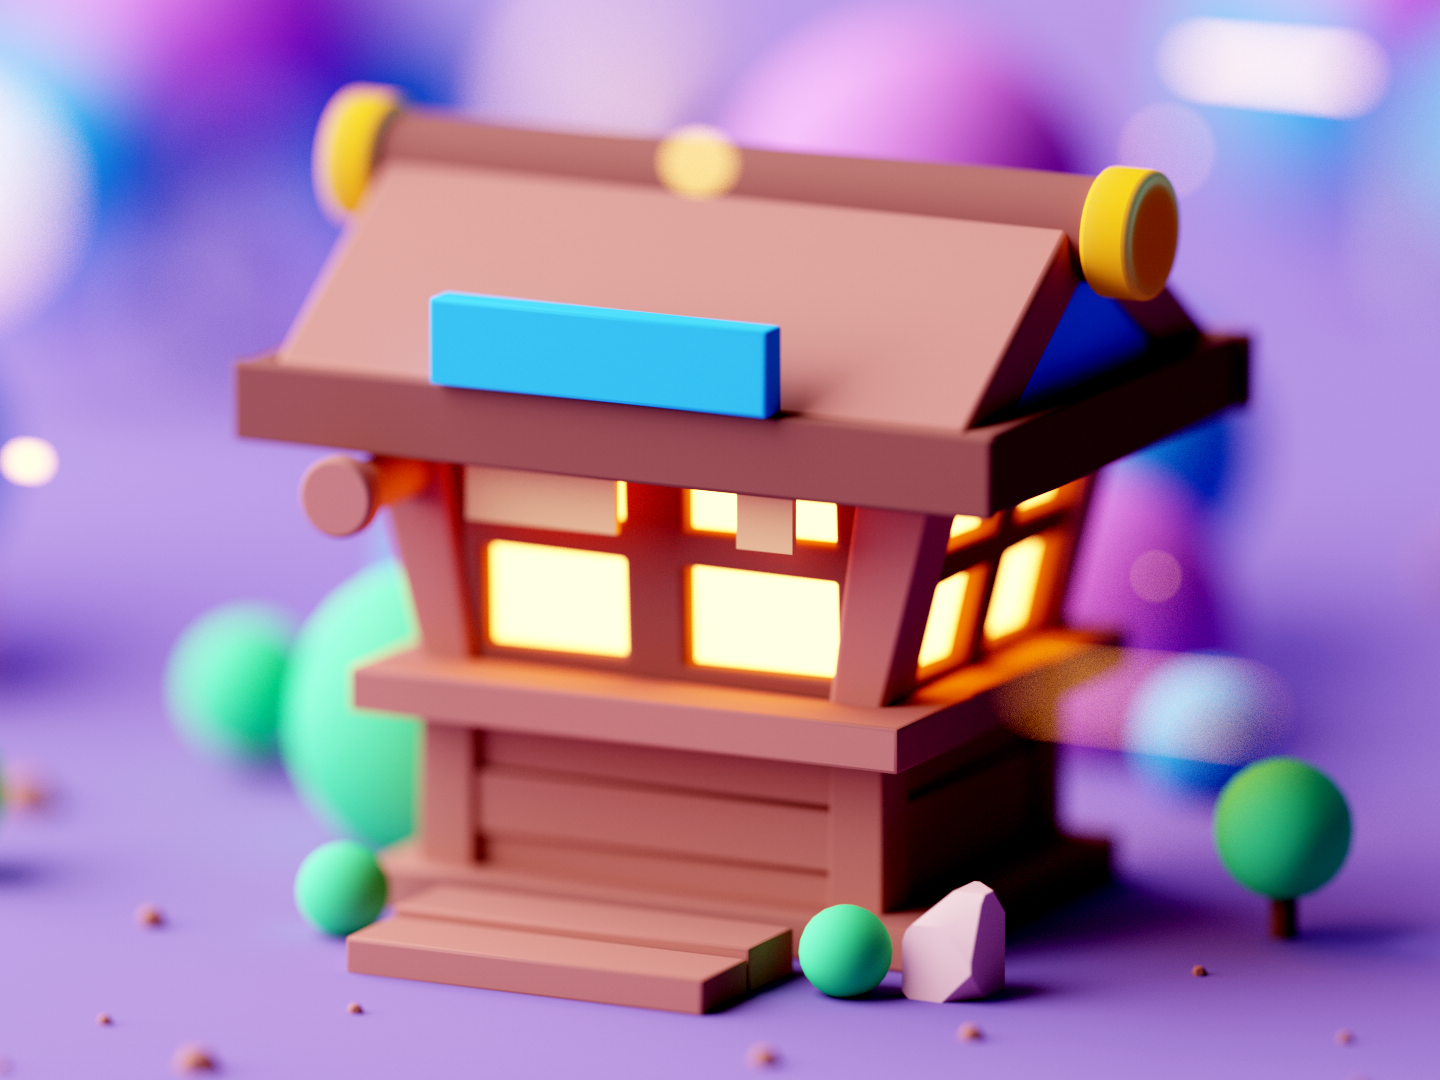 Shop game asset game design design cinema4d forest game building fantasy illustration cartoon low poly isometric room game lowpoly octane cinema 4d c4d 3d isometric